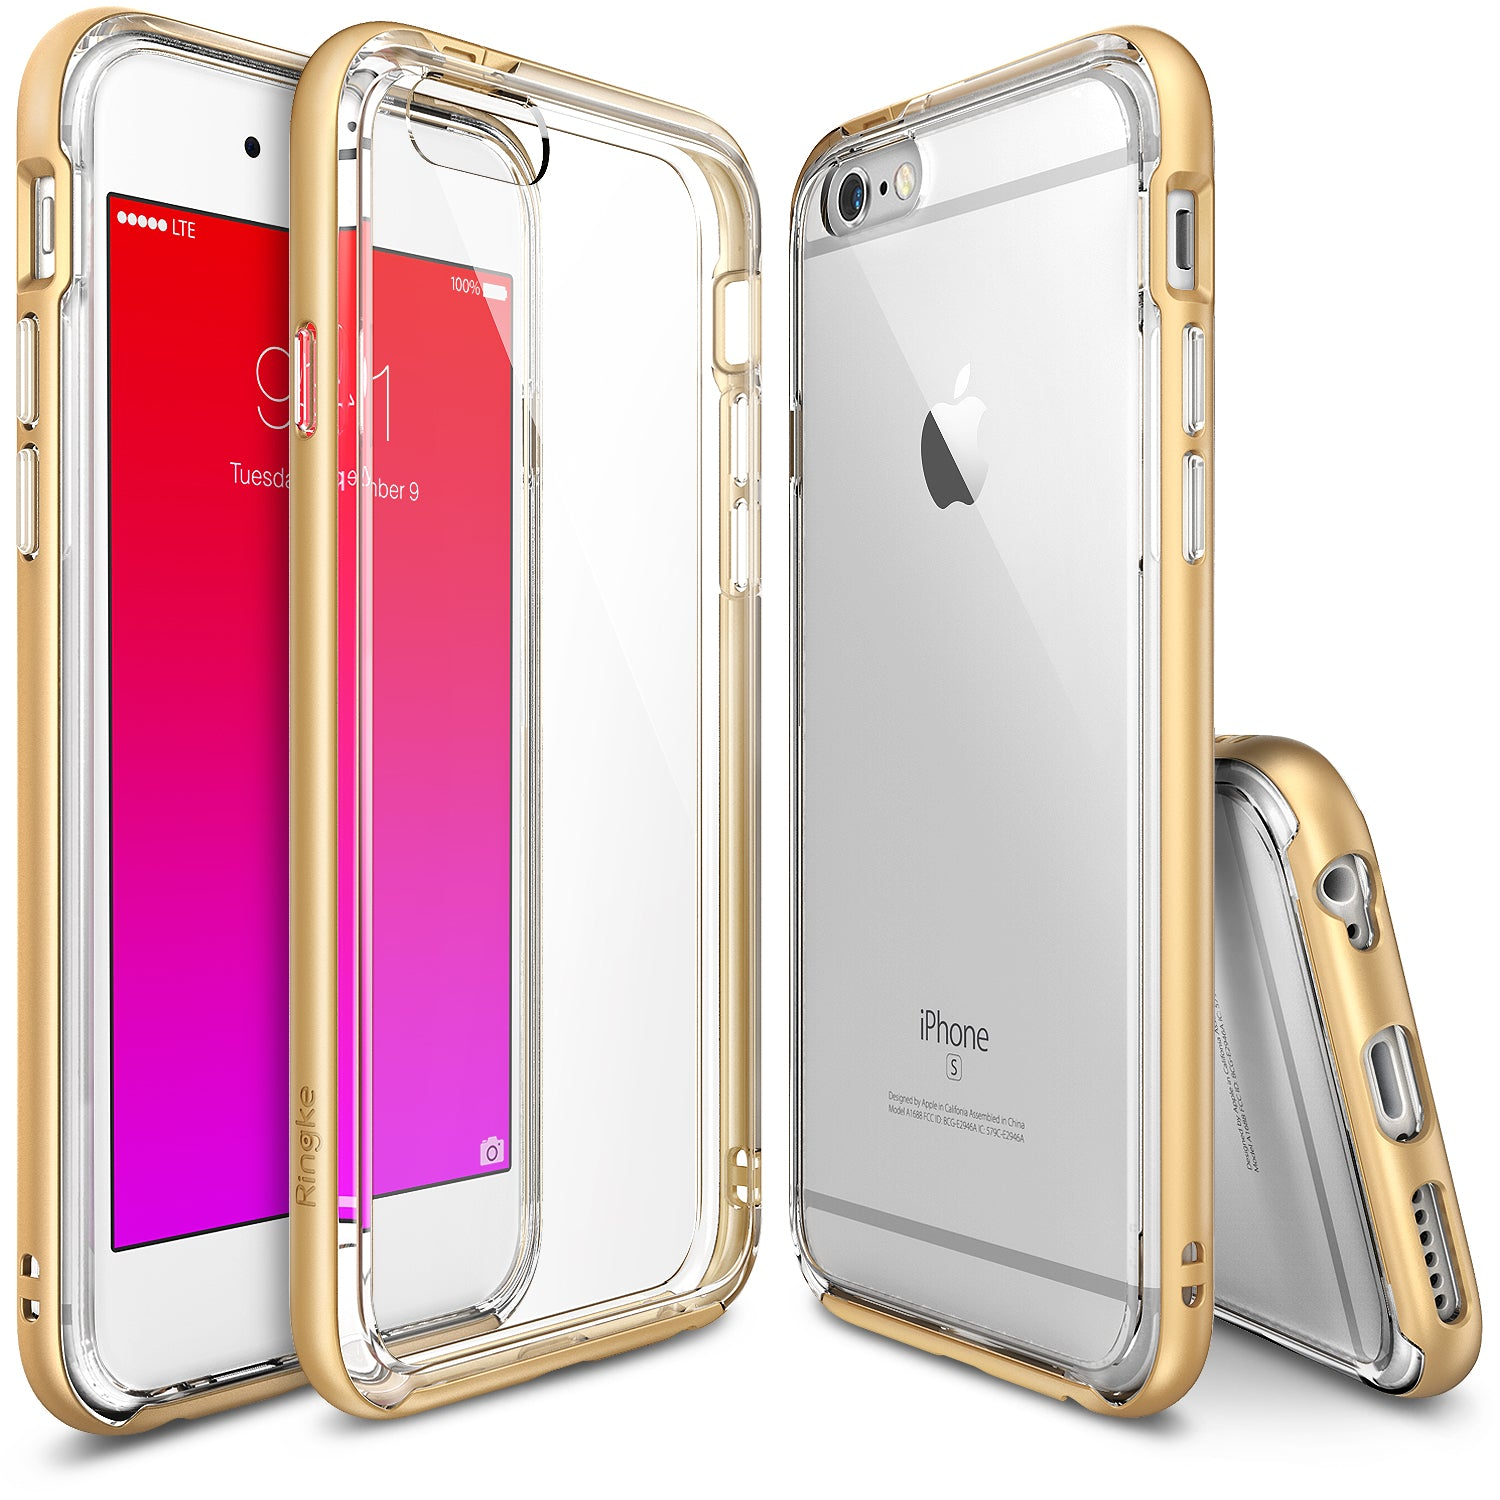 ringke frame bezel side protection case cover for iphone 6 6s main royal gold